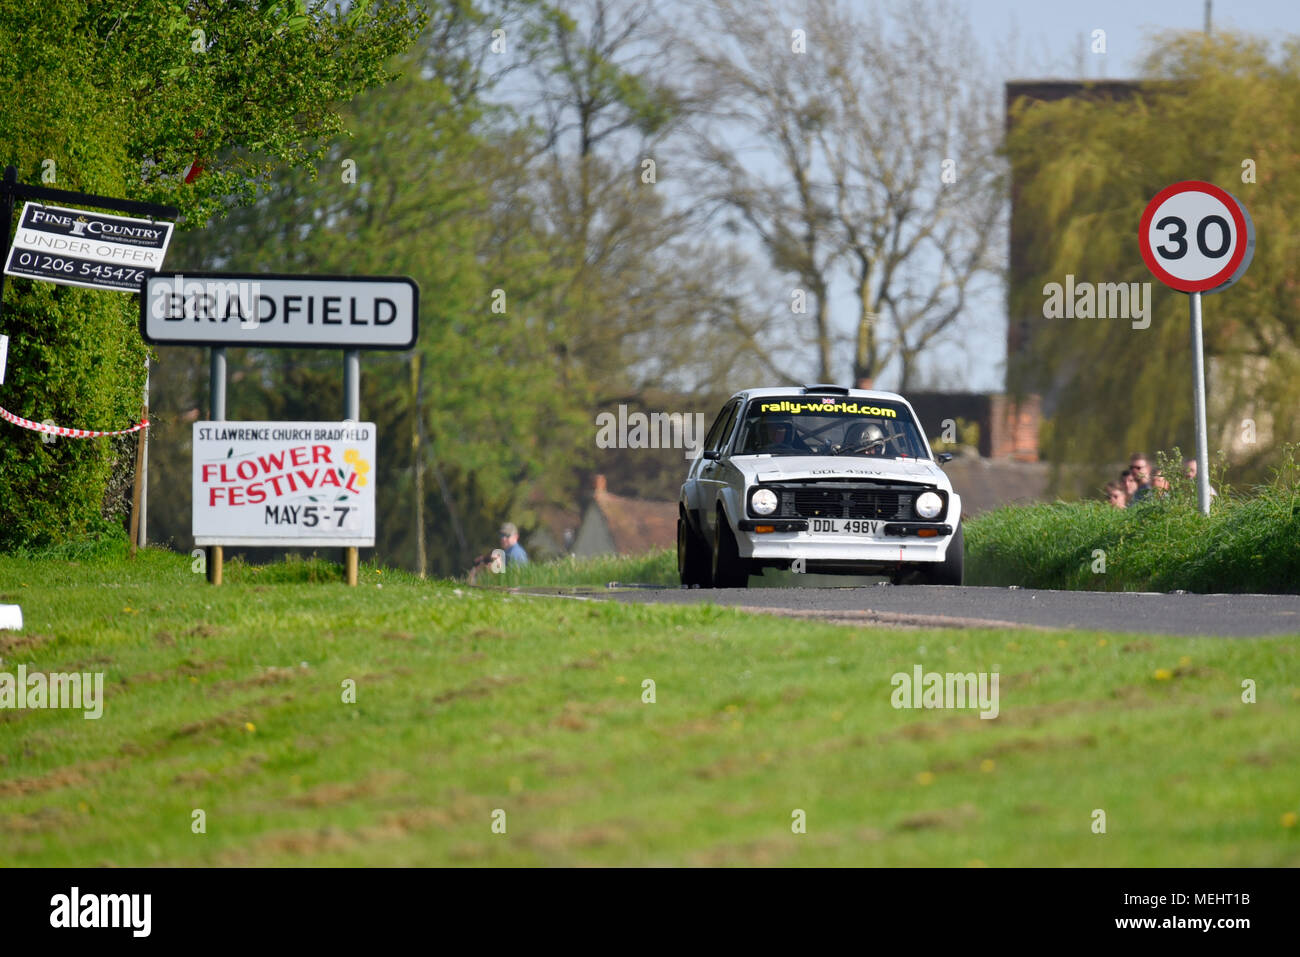 Uk Road Sign Ford Stock Photos & Uk Road Sign Ford Stock Images - Alamy